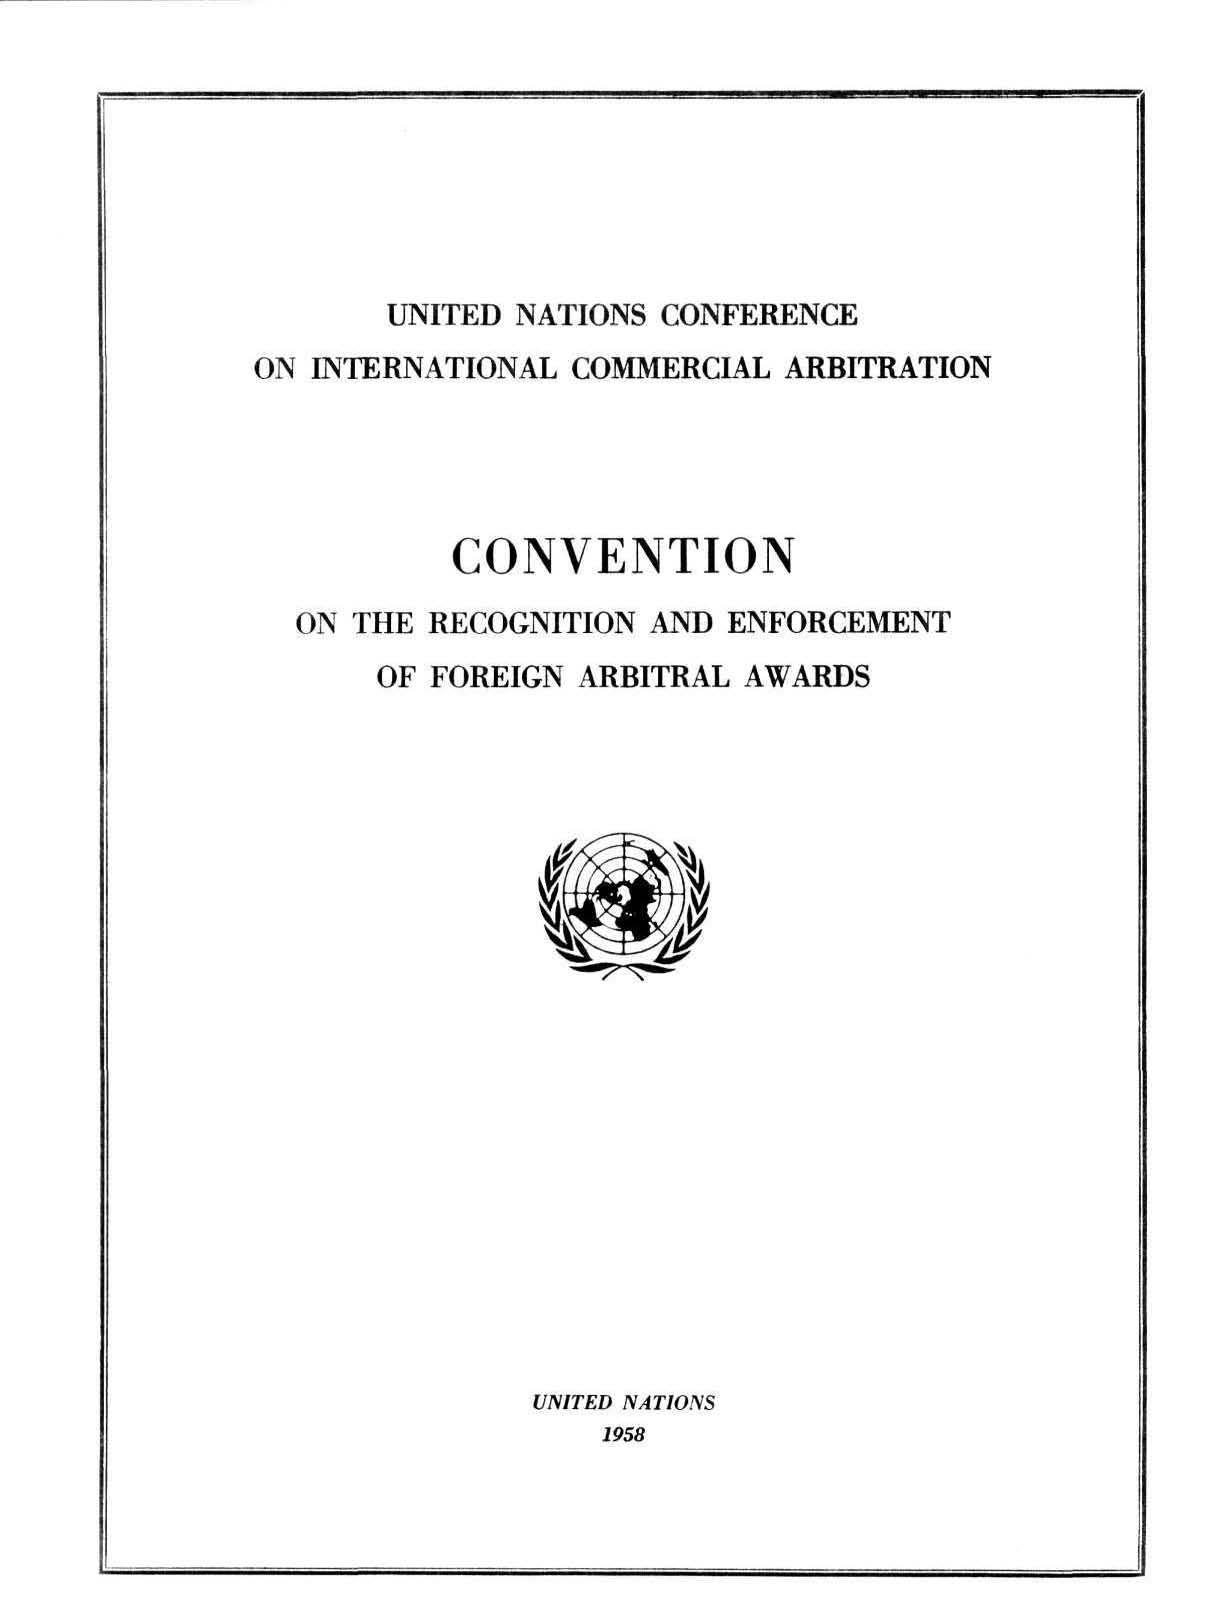 UNITED NATIONS CONFERENCE ON INTERNATIONAL COMMERCIAL ARBITRATION CONVENTION